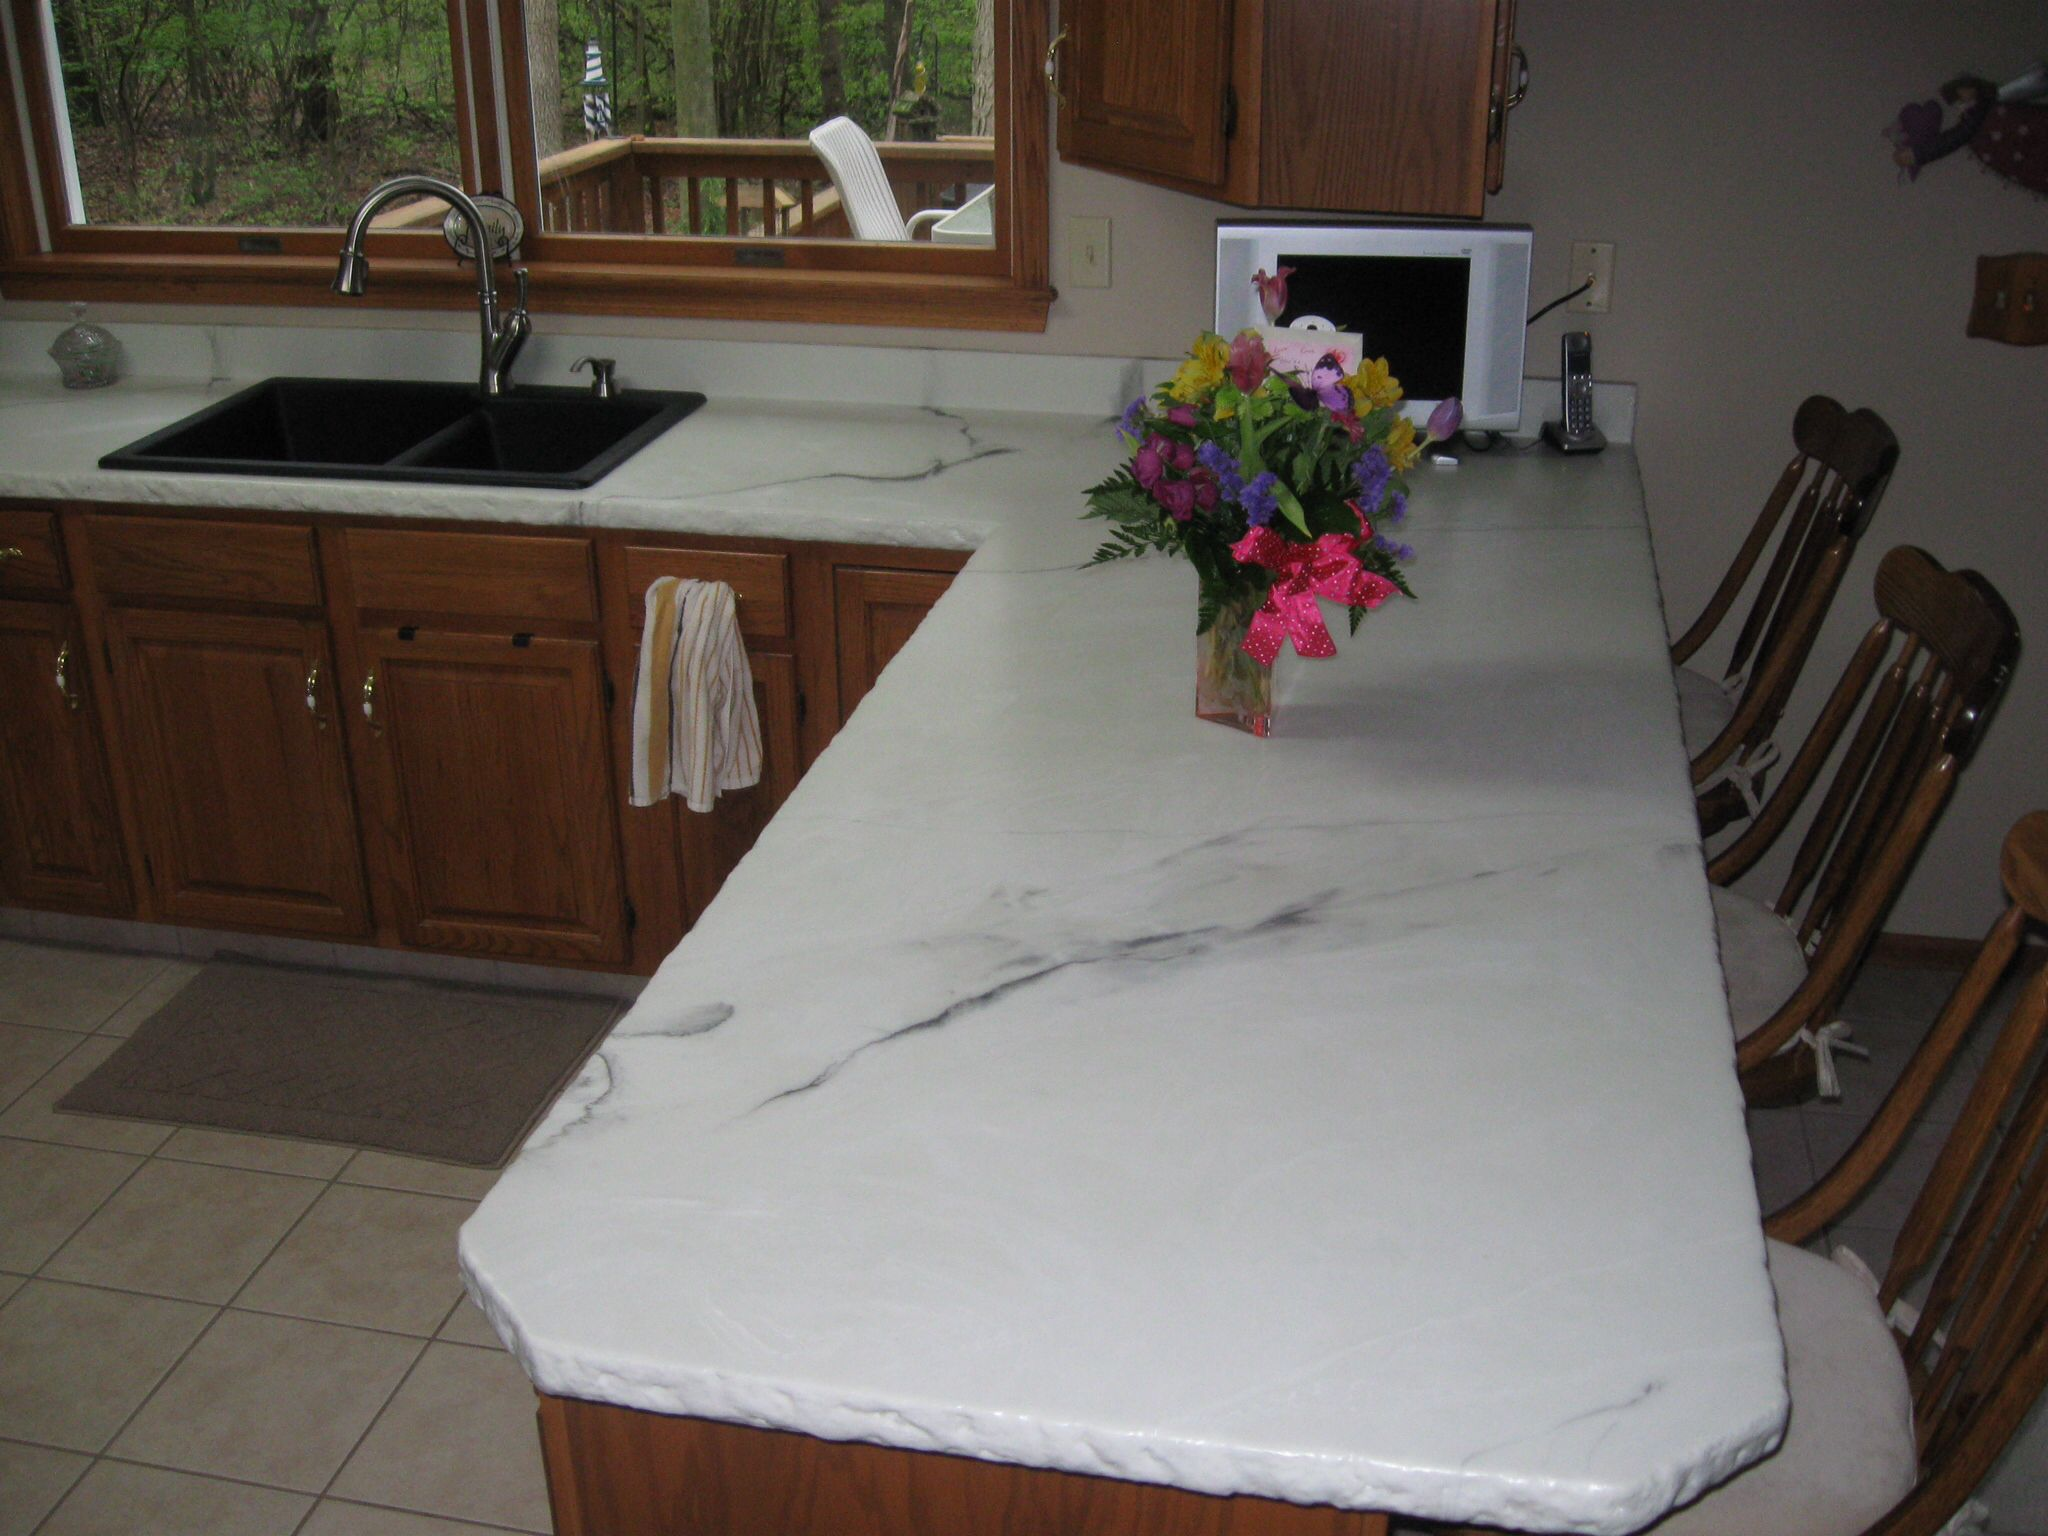 Concrete Overlay Countertops Diy Concrete Overlay Over Old Blue Formica Looks Like White Marble No